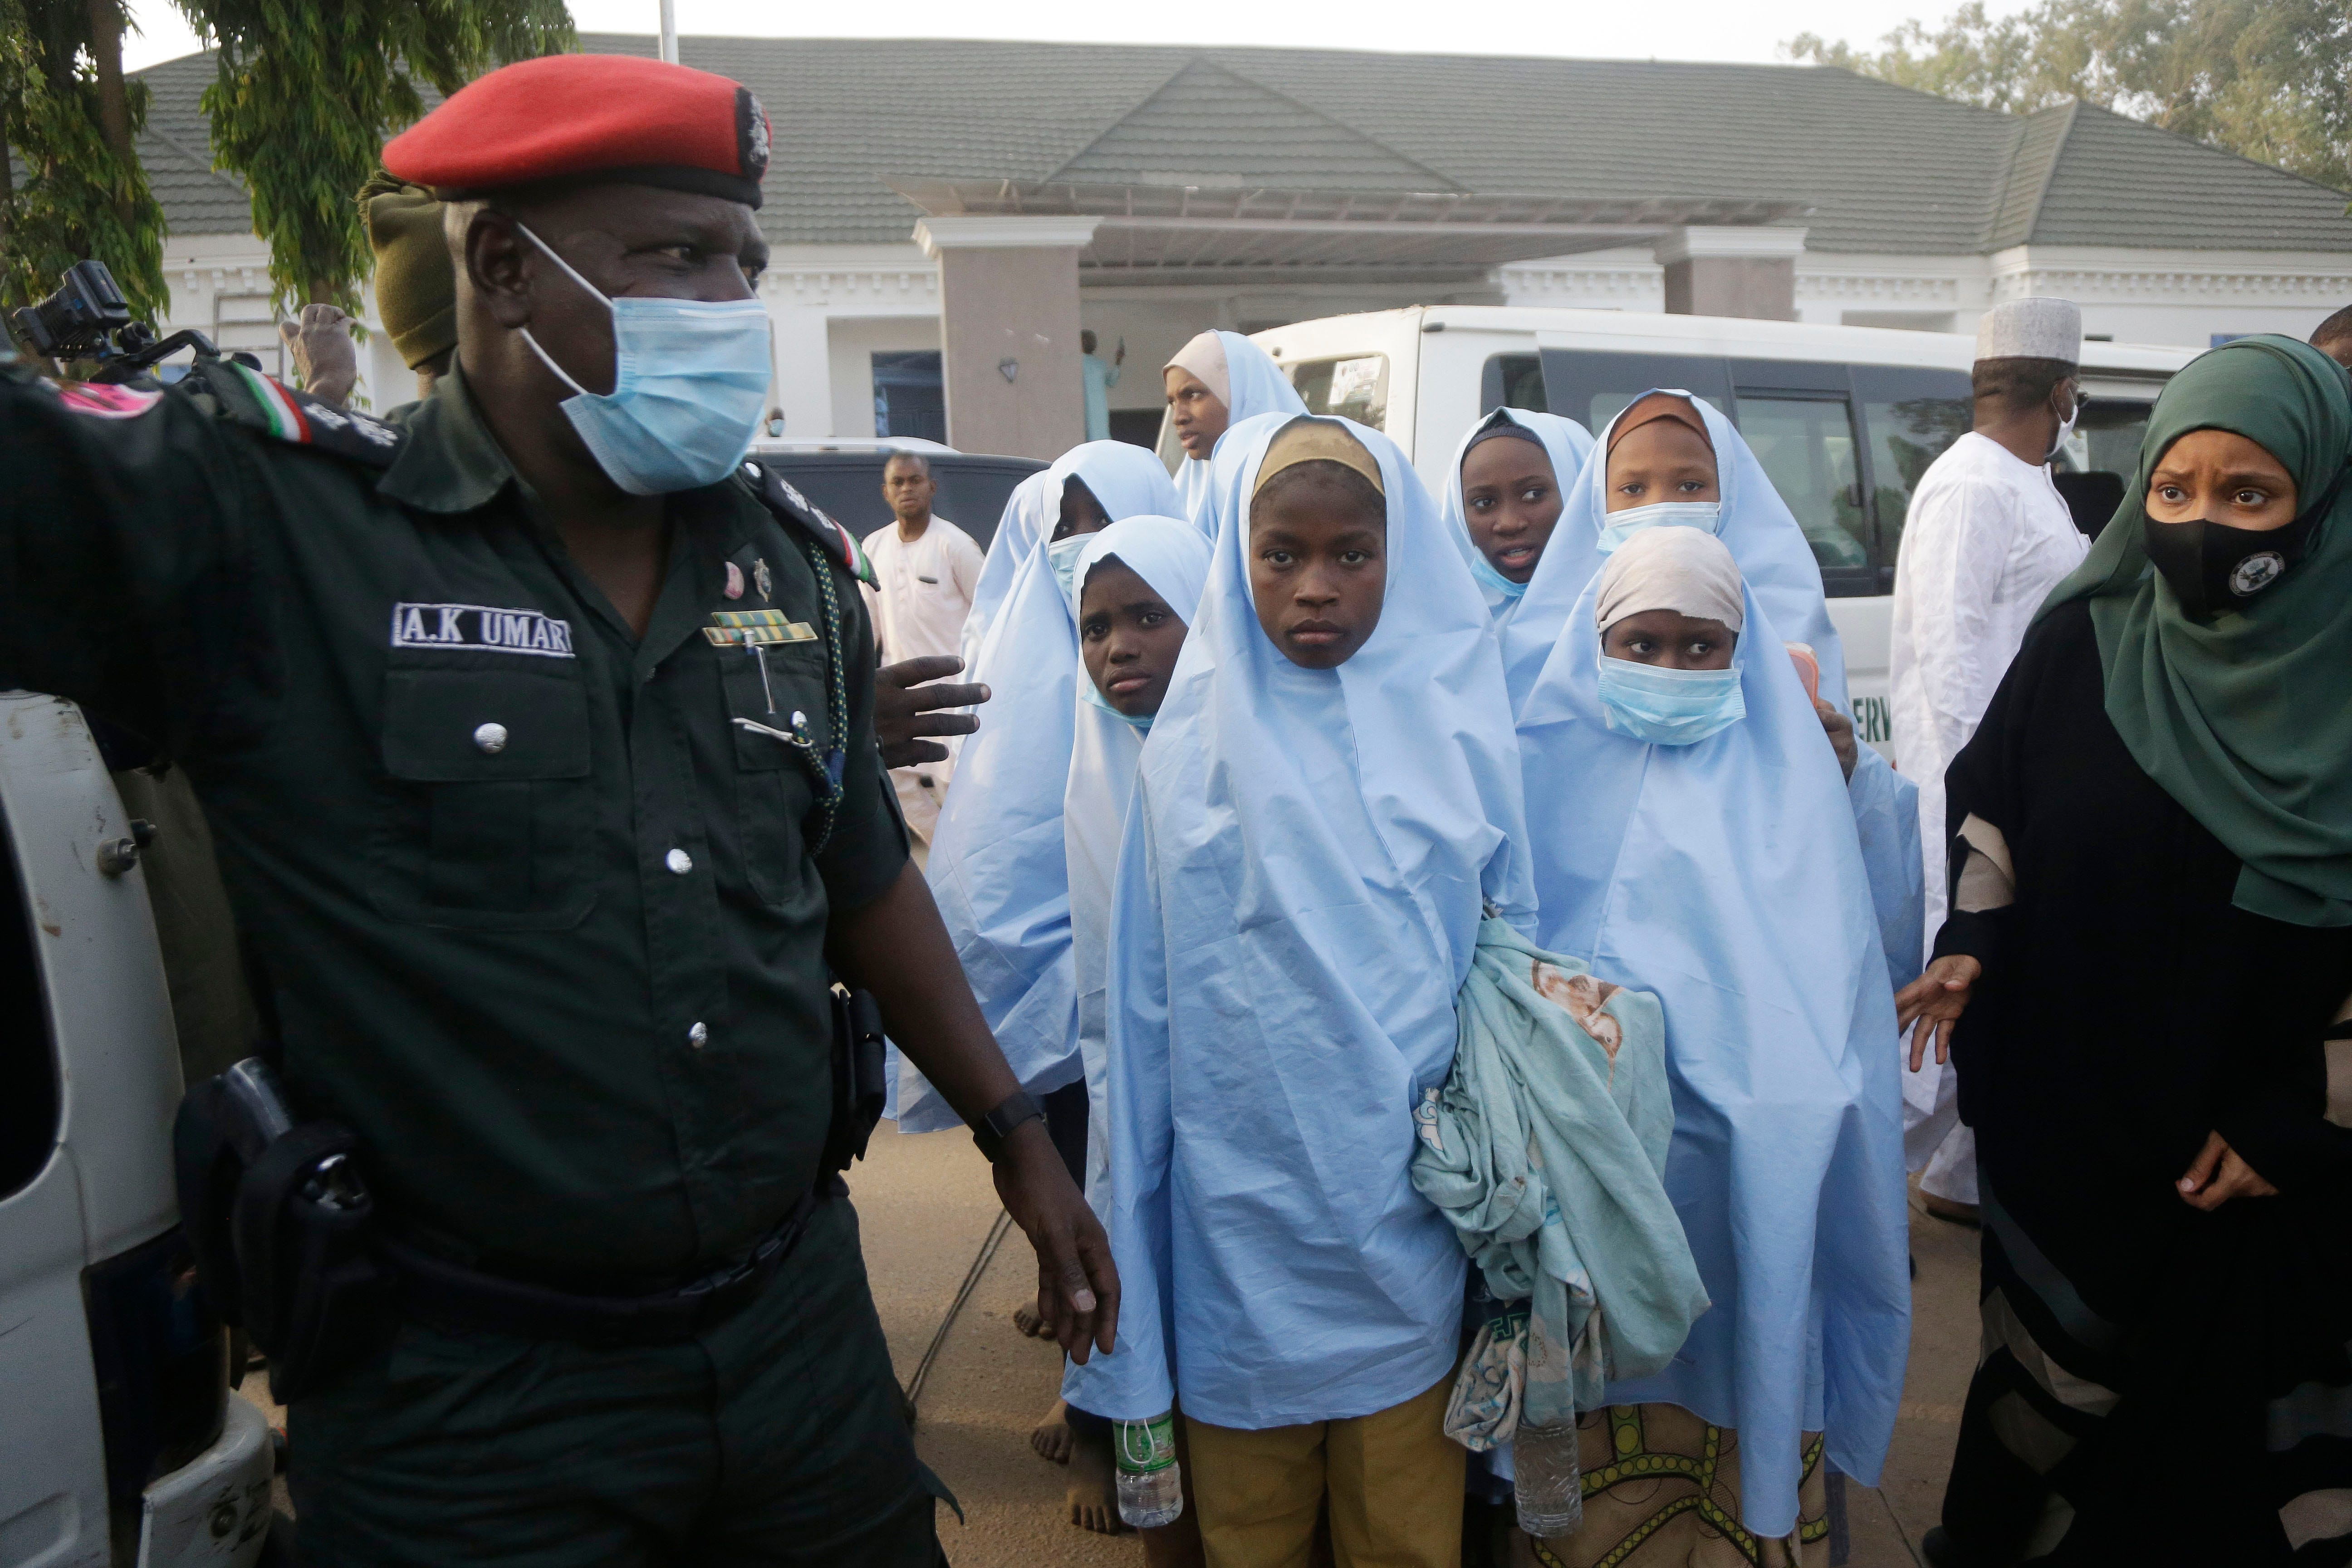 Nigeria is trapped in a cycle of kidnappings and thousands are missing amid predatory practices